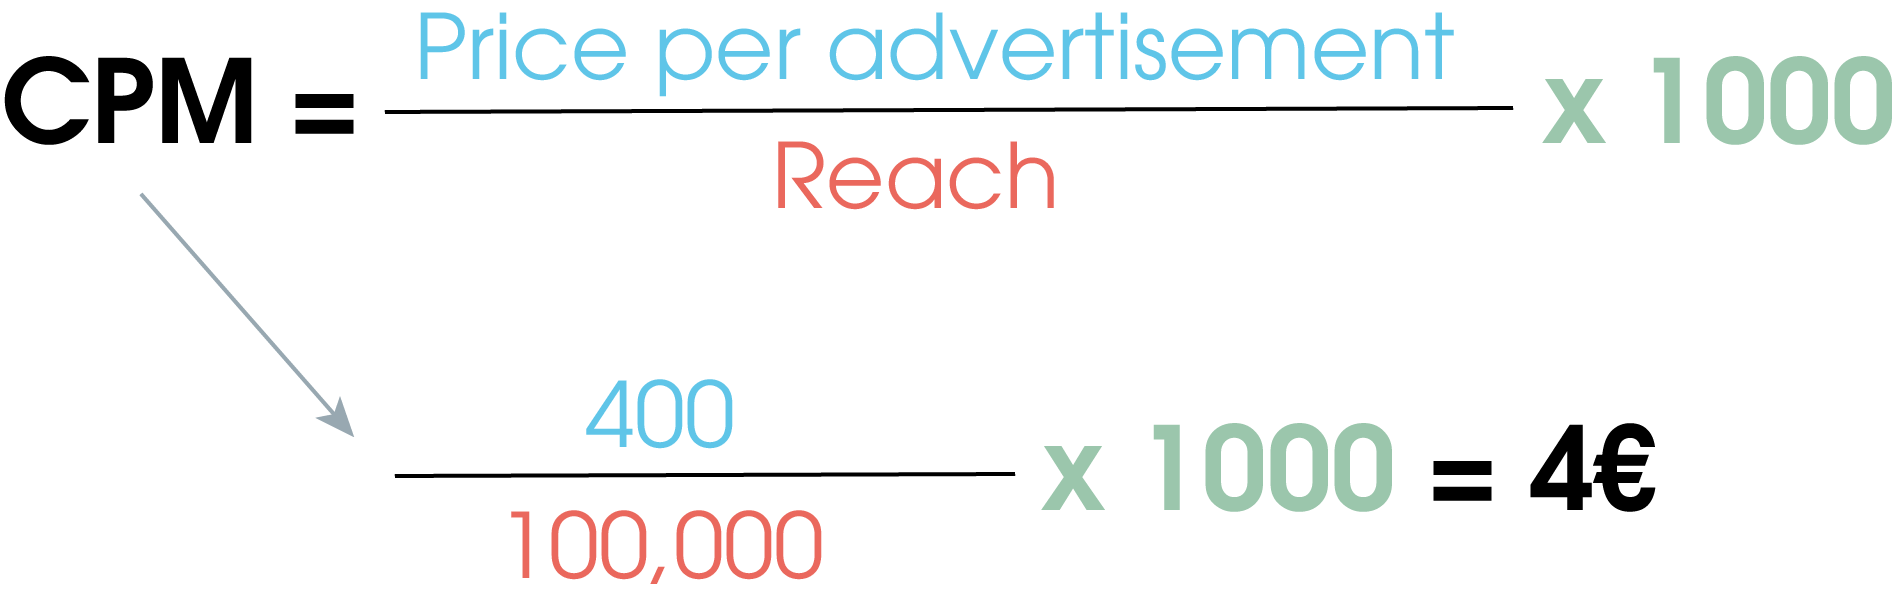 Calculation of CPM based on the example with a price of 400 € for a price per ad